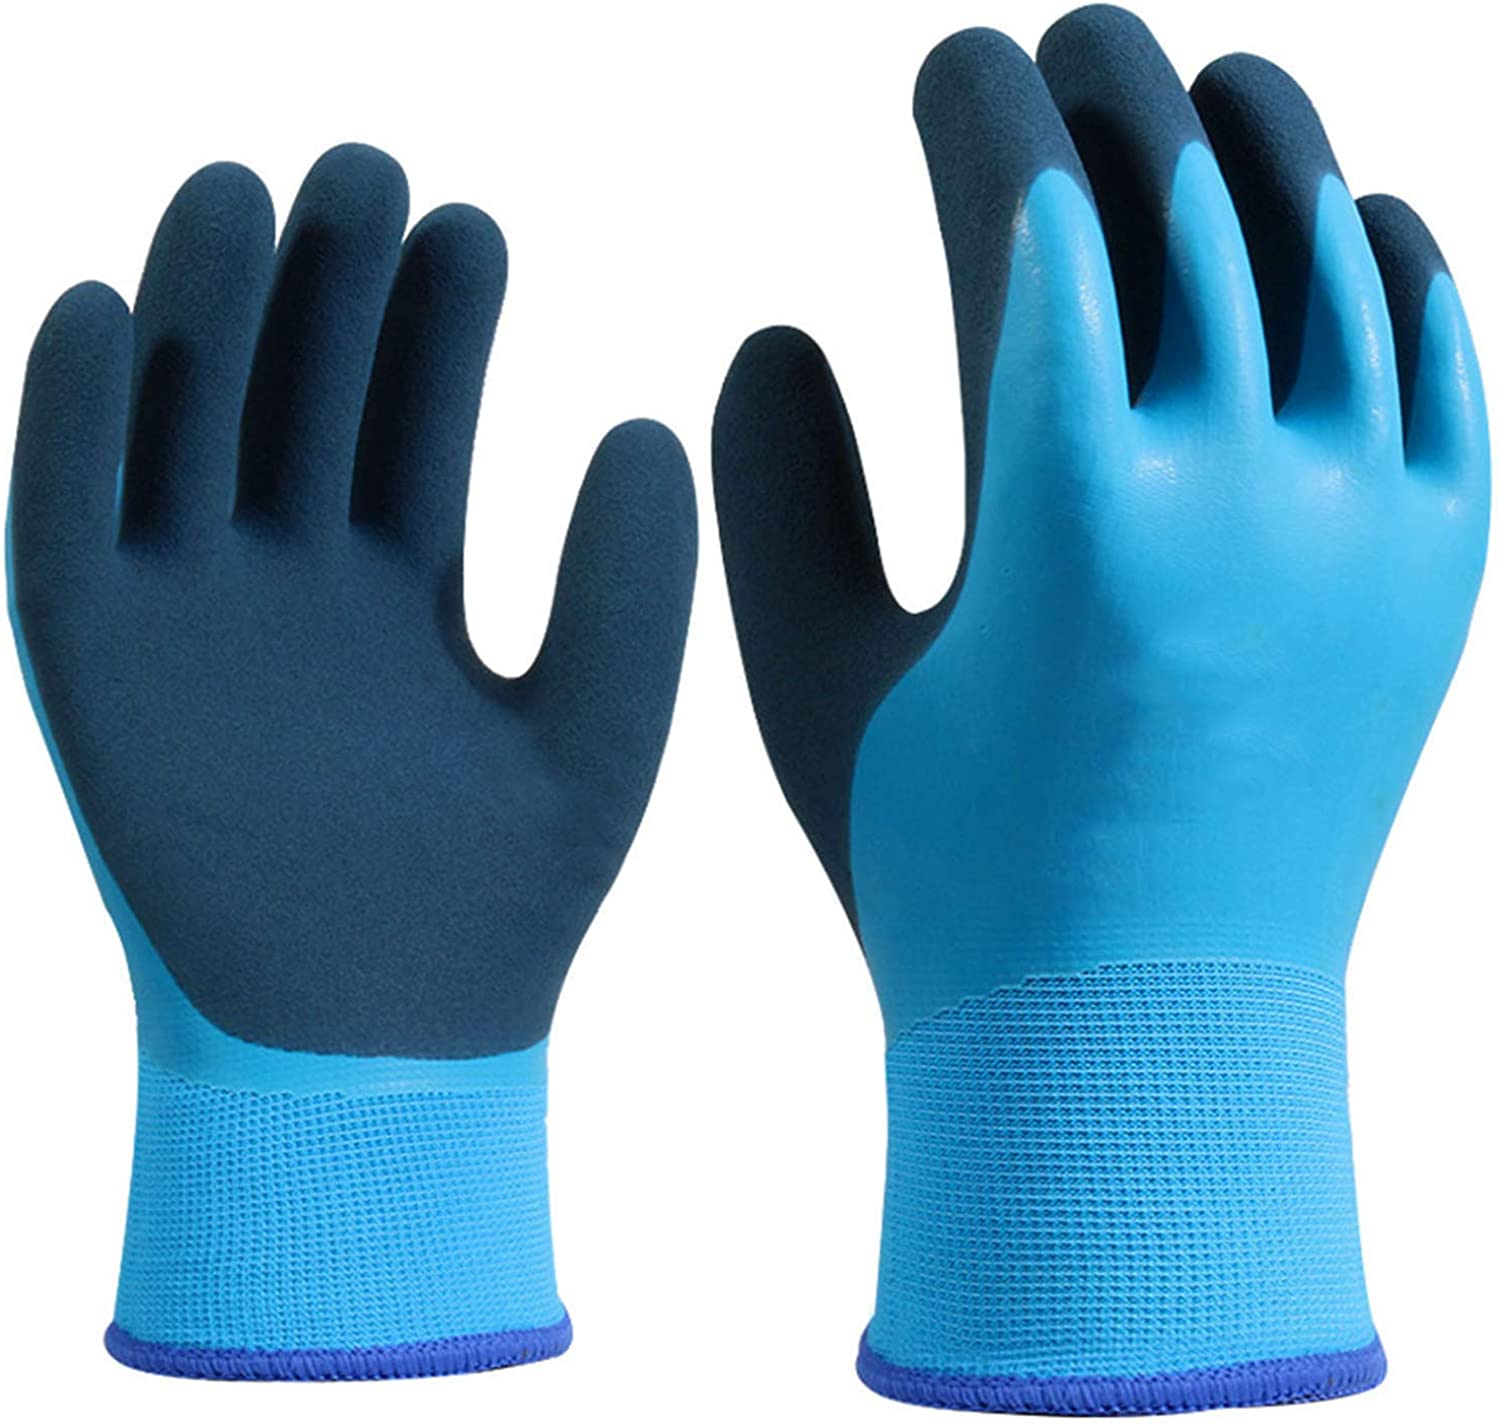 Winter Work Gloves Waterproof Winter Cold Weather Gloves Outdoor Ice Snow Cold Multi-Purpose